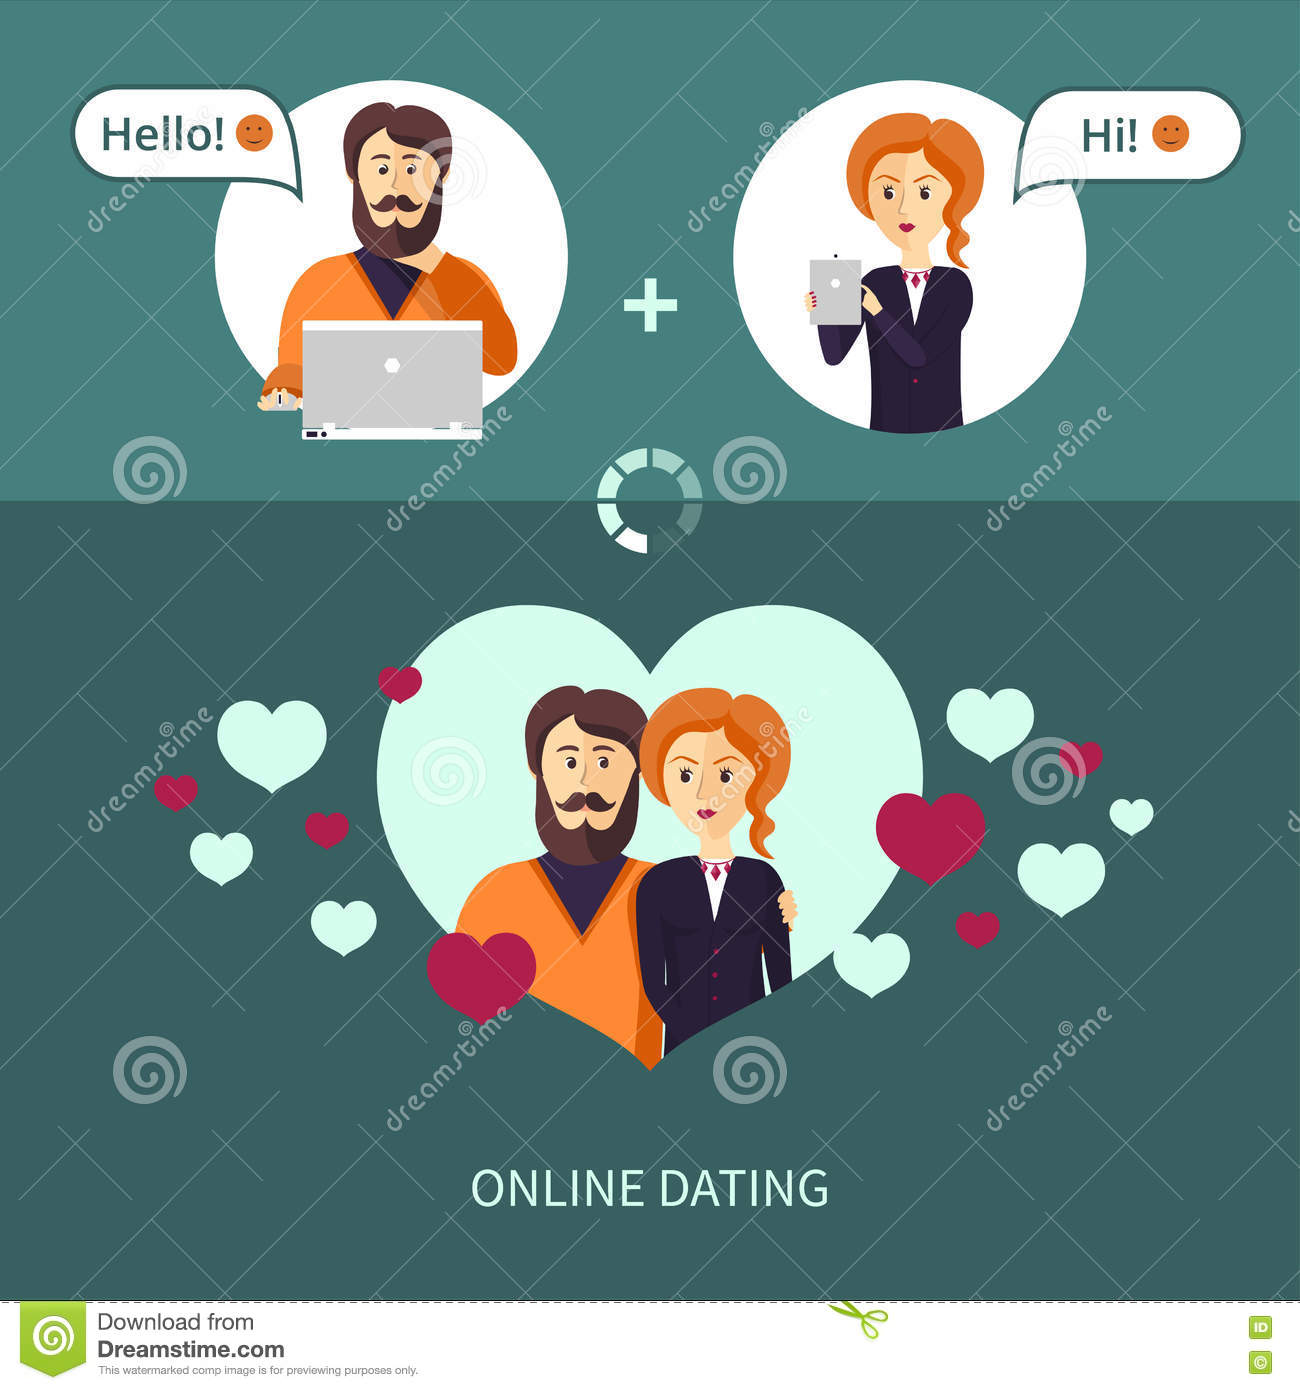 dating a red haired woman Hot red hair girls 1,919 likes 5 talking about this if you are a hot red haired girl or you like them, join this page and share your passion we want.